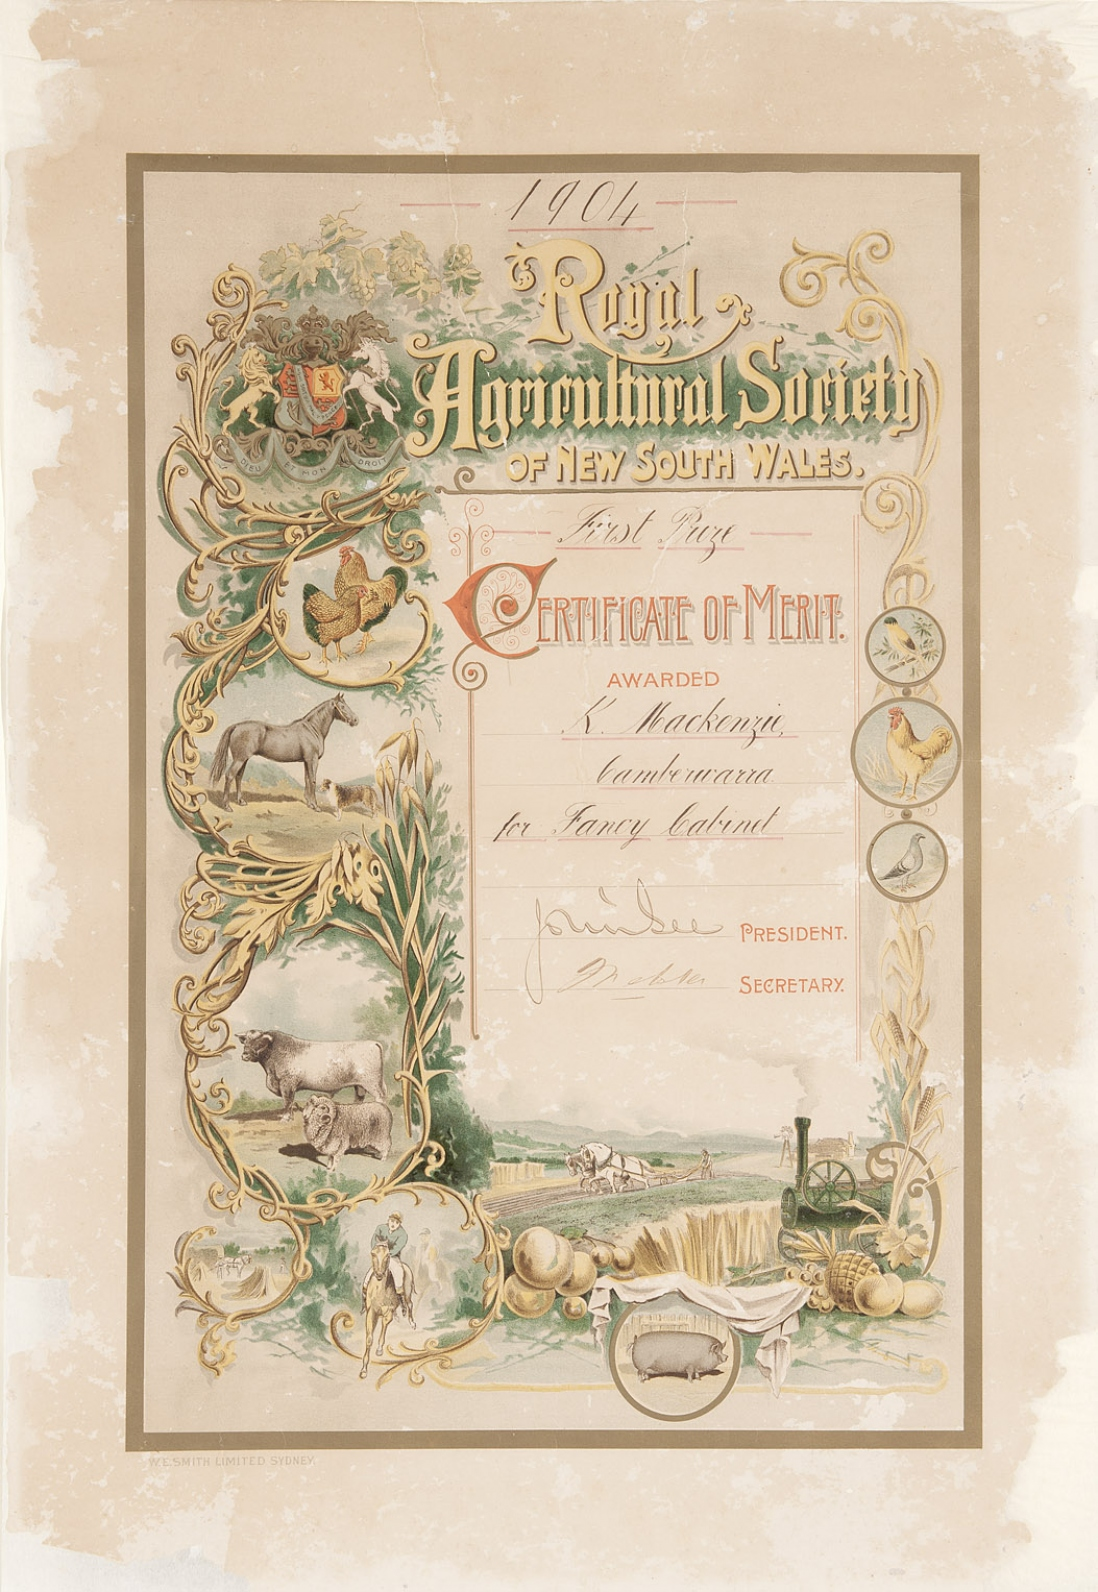 Ornately decorated certificate.